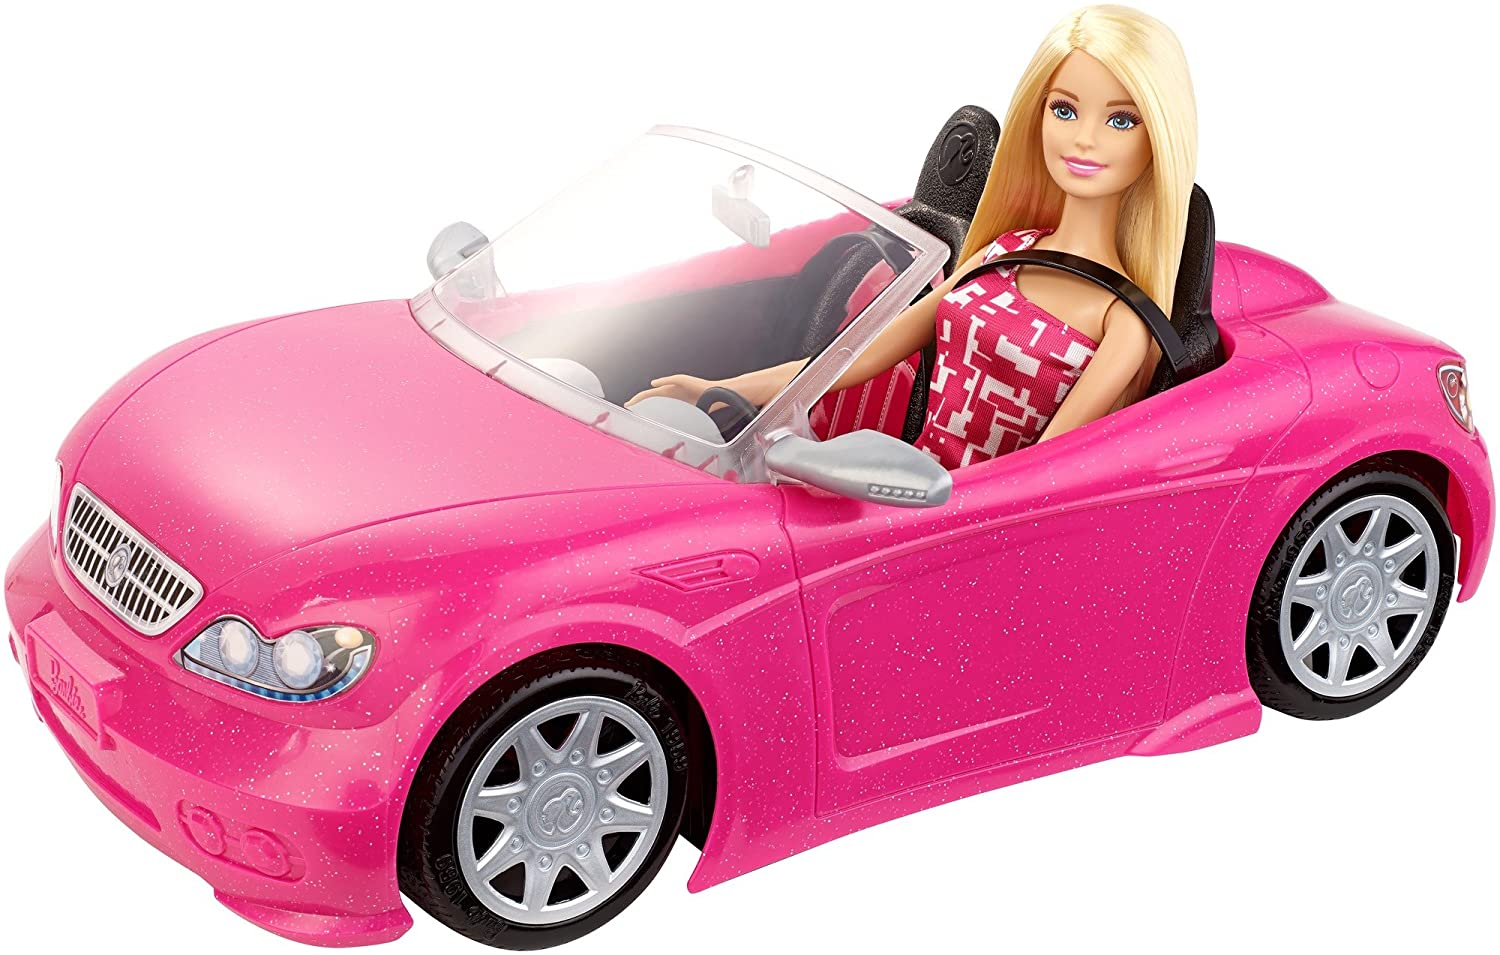 Barbie Convertible and Doll Pack Mattel DJR55